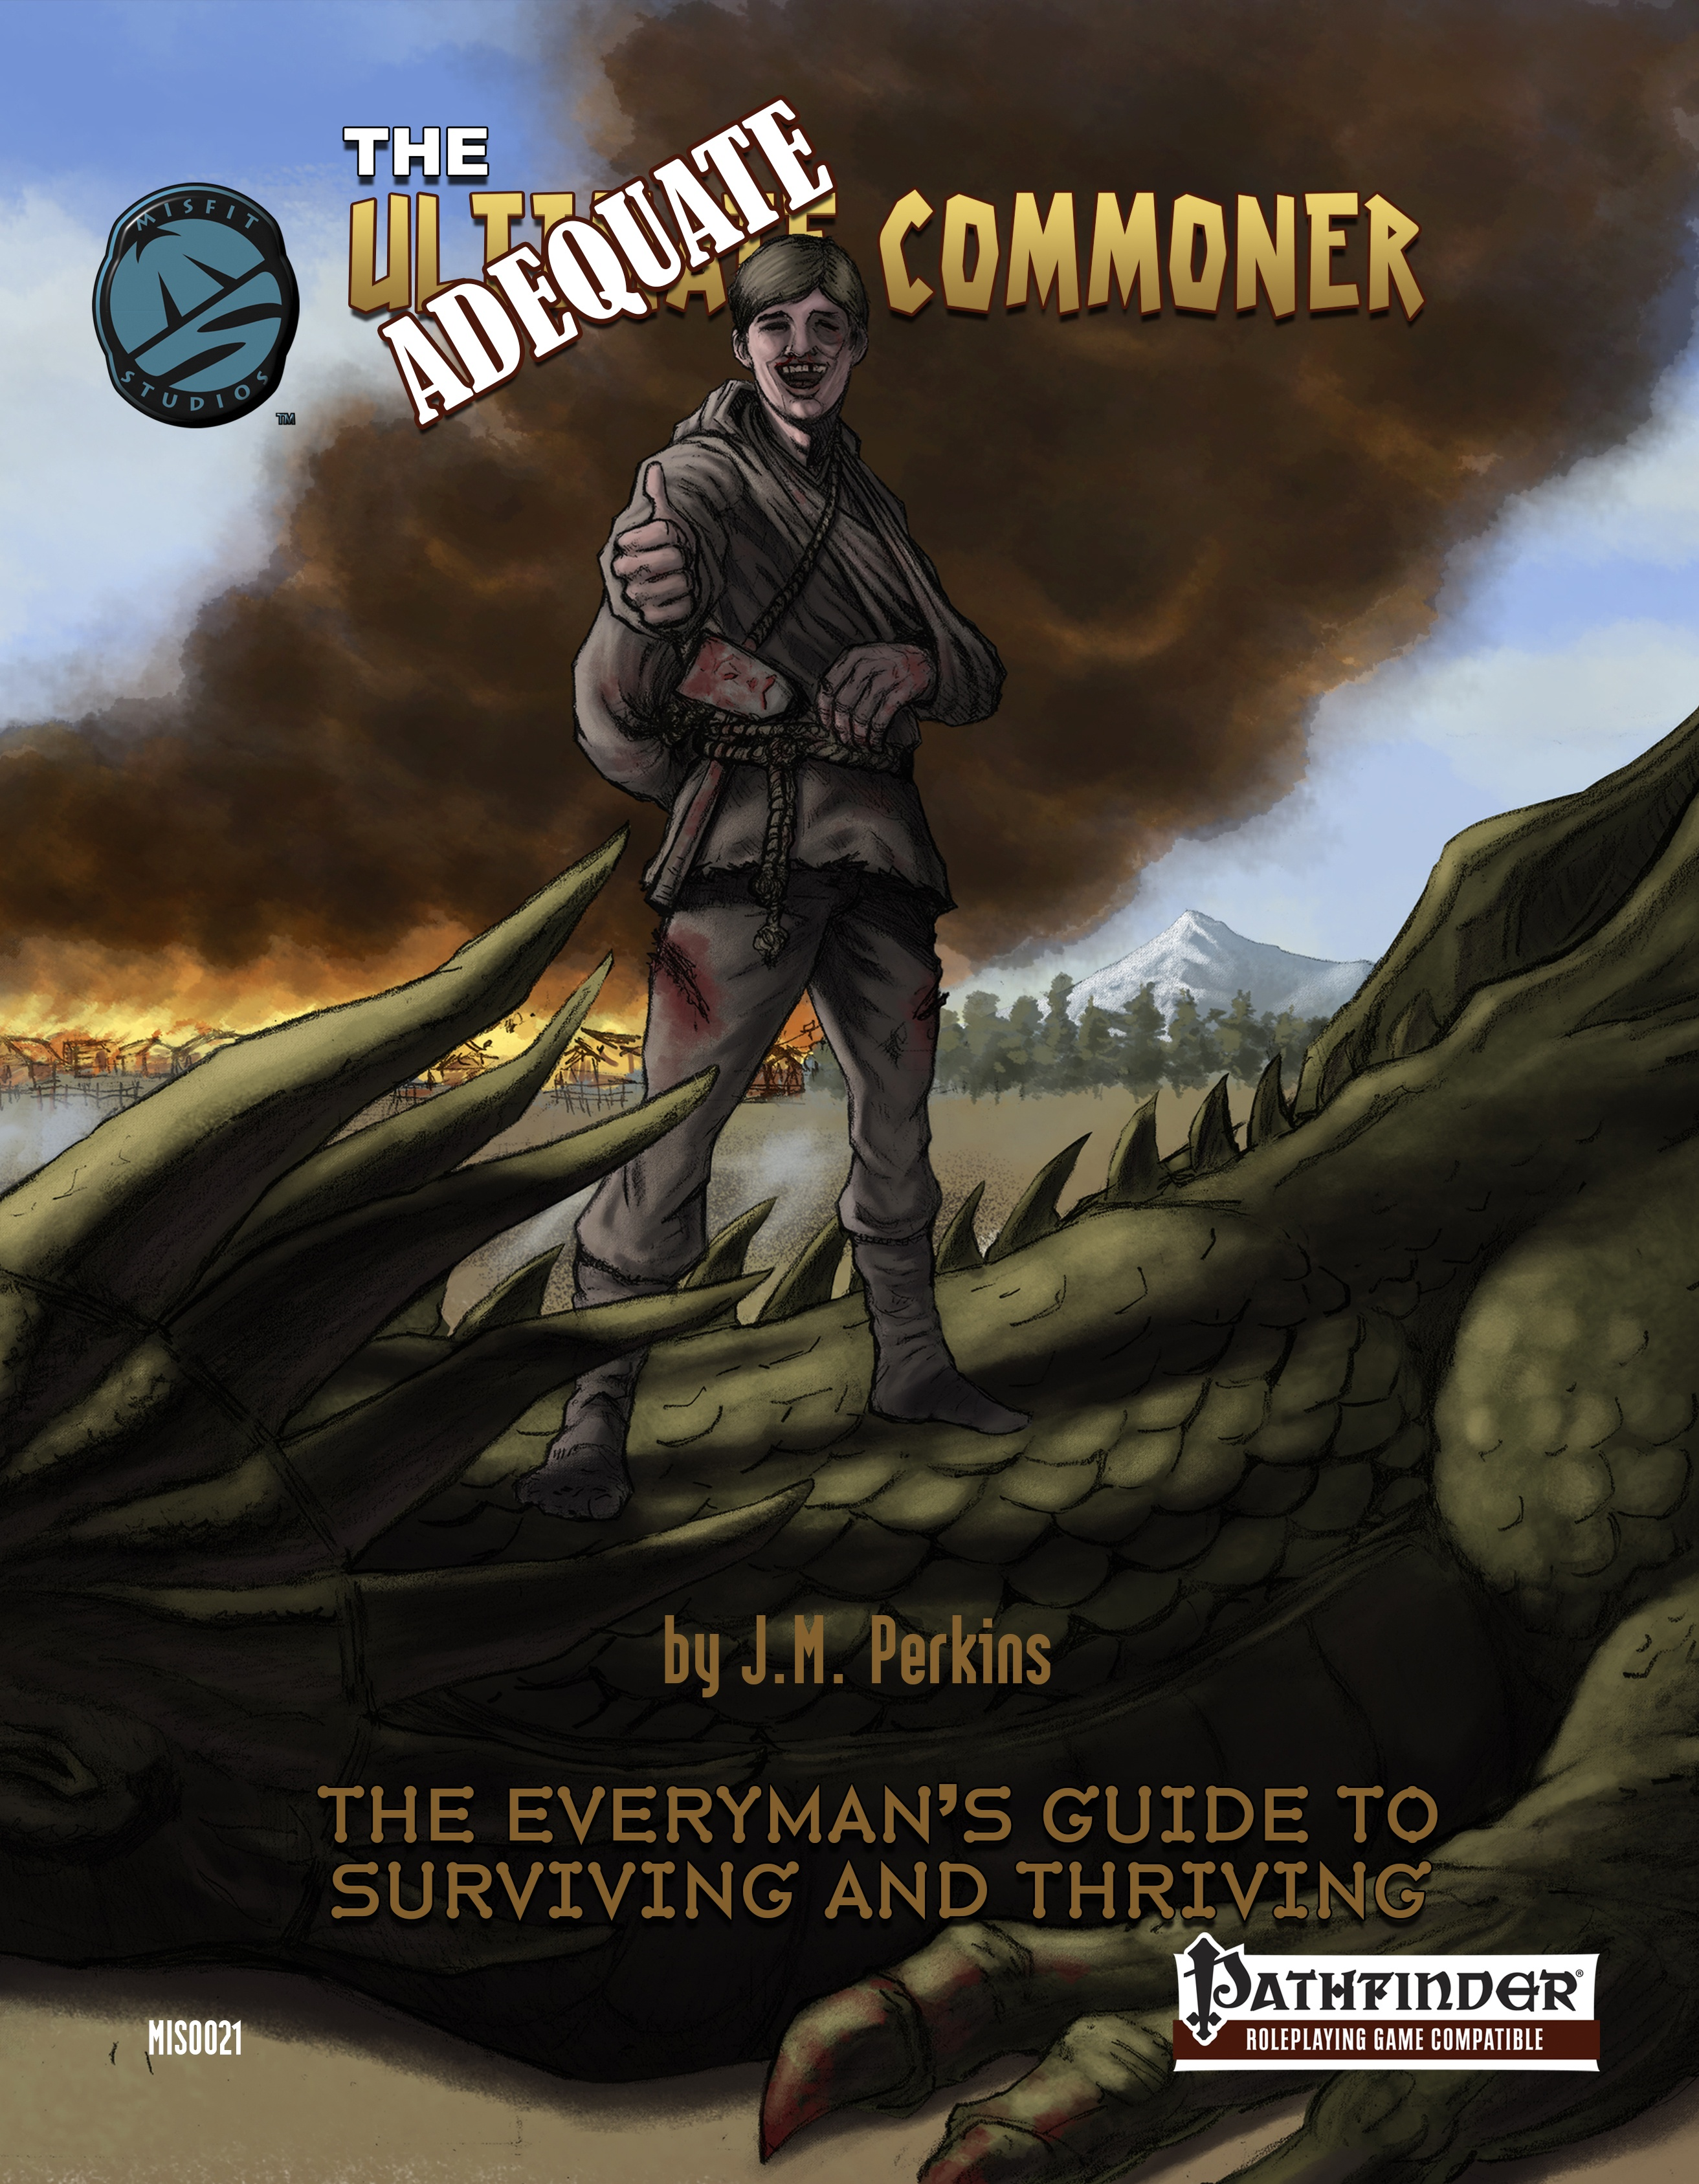 The Adequate Commoner for the Pathfinder RPG